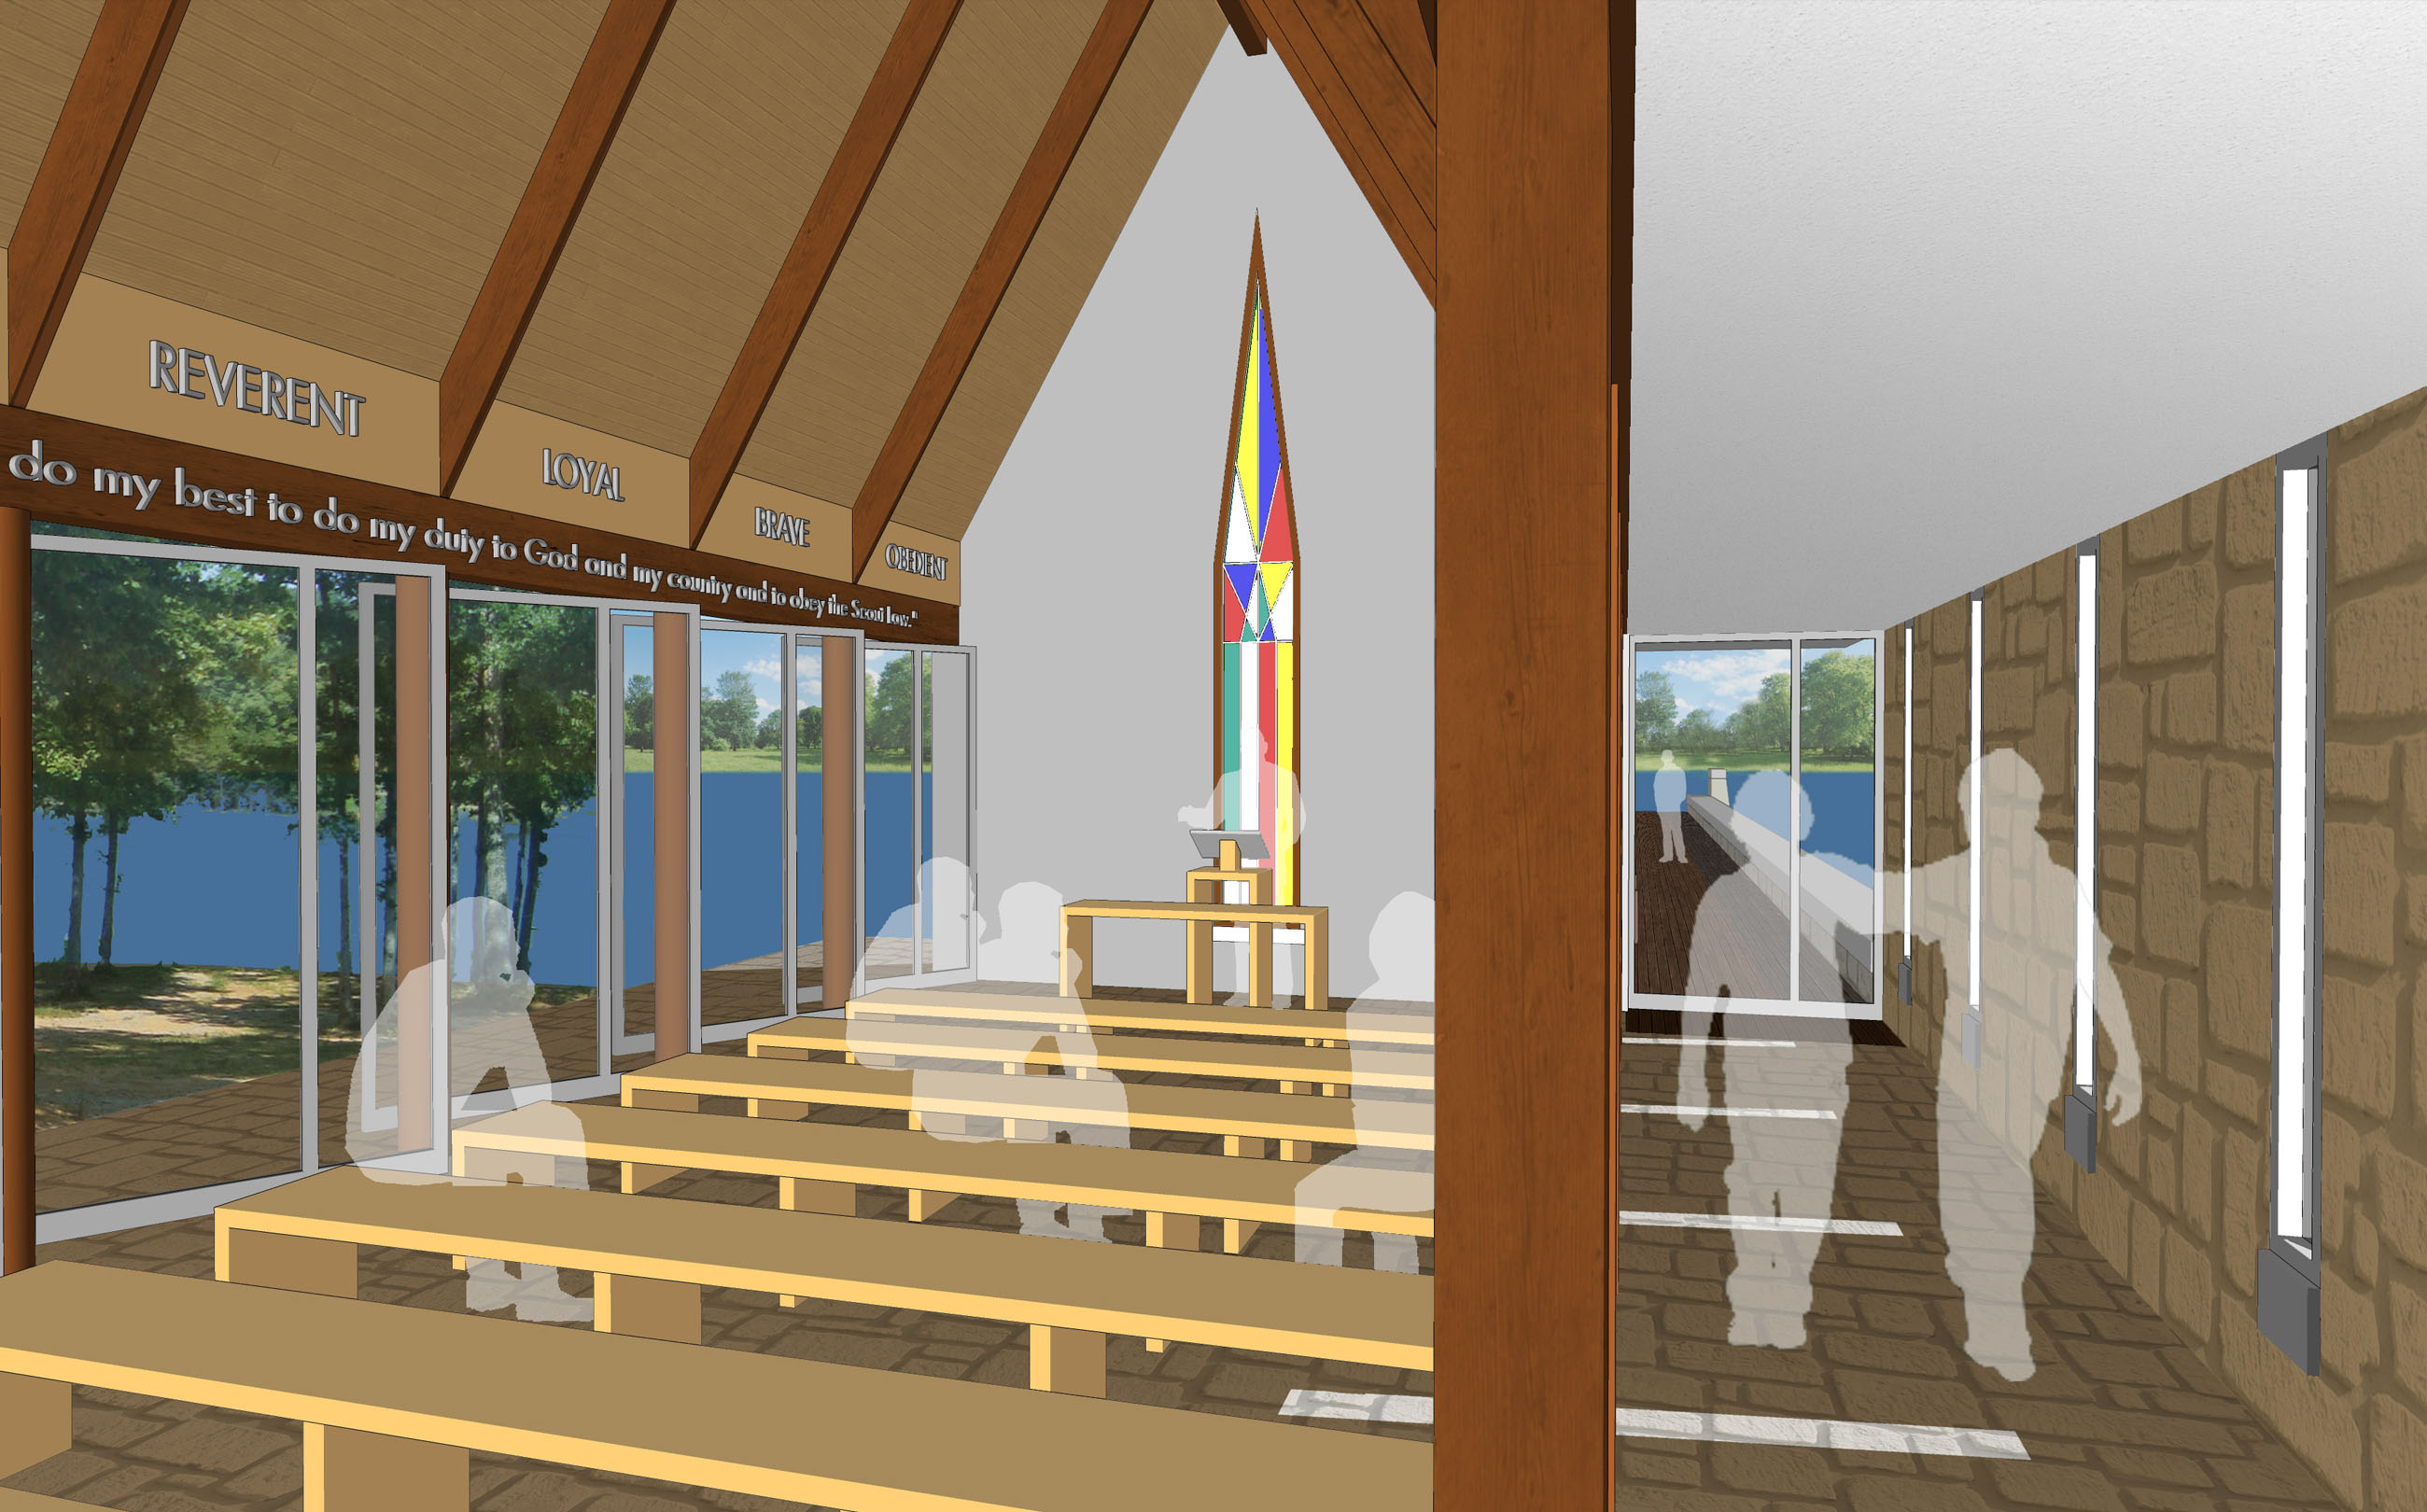 Latimer High Adventure Reservation Chapel, Boy Scouts, Spencer, Tennessee, architecture, design, unbuilt, rendering, model